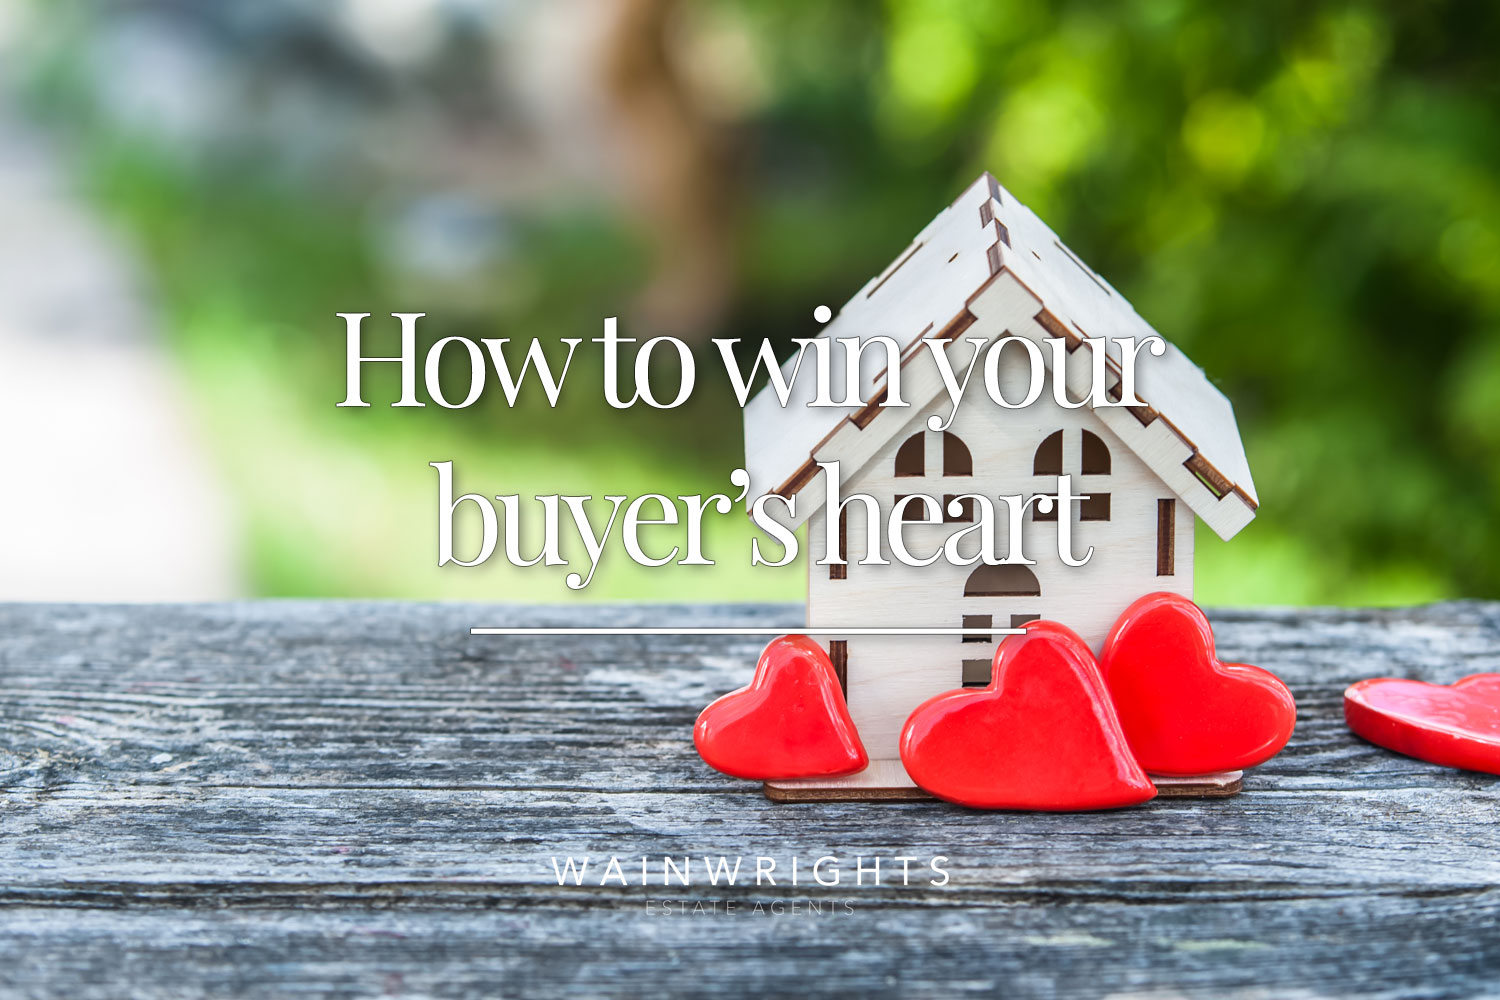 How-to-win-your-buyer's-heart-2